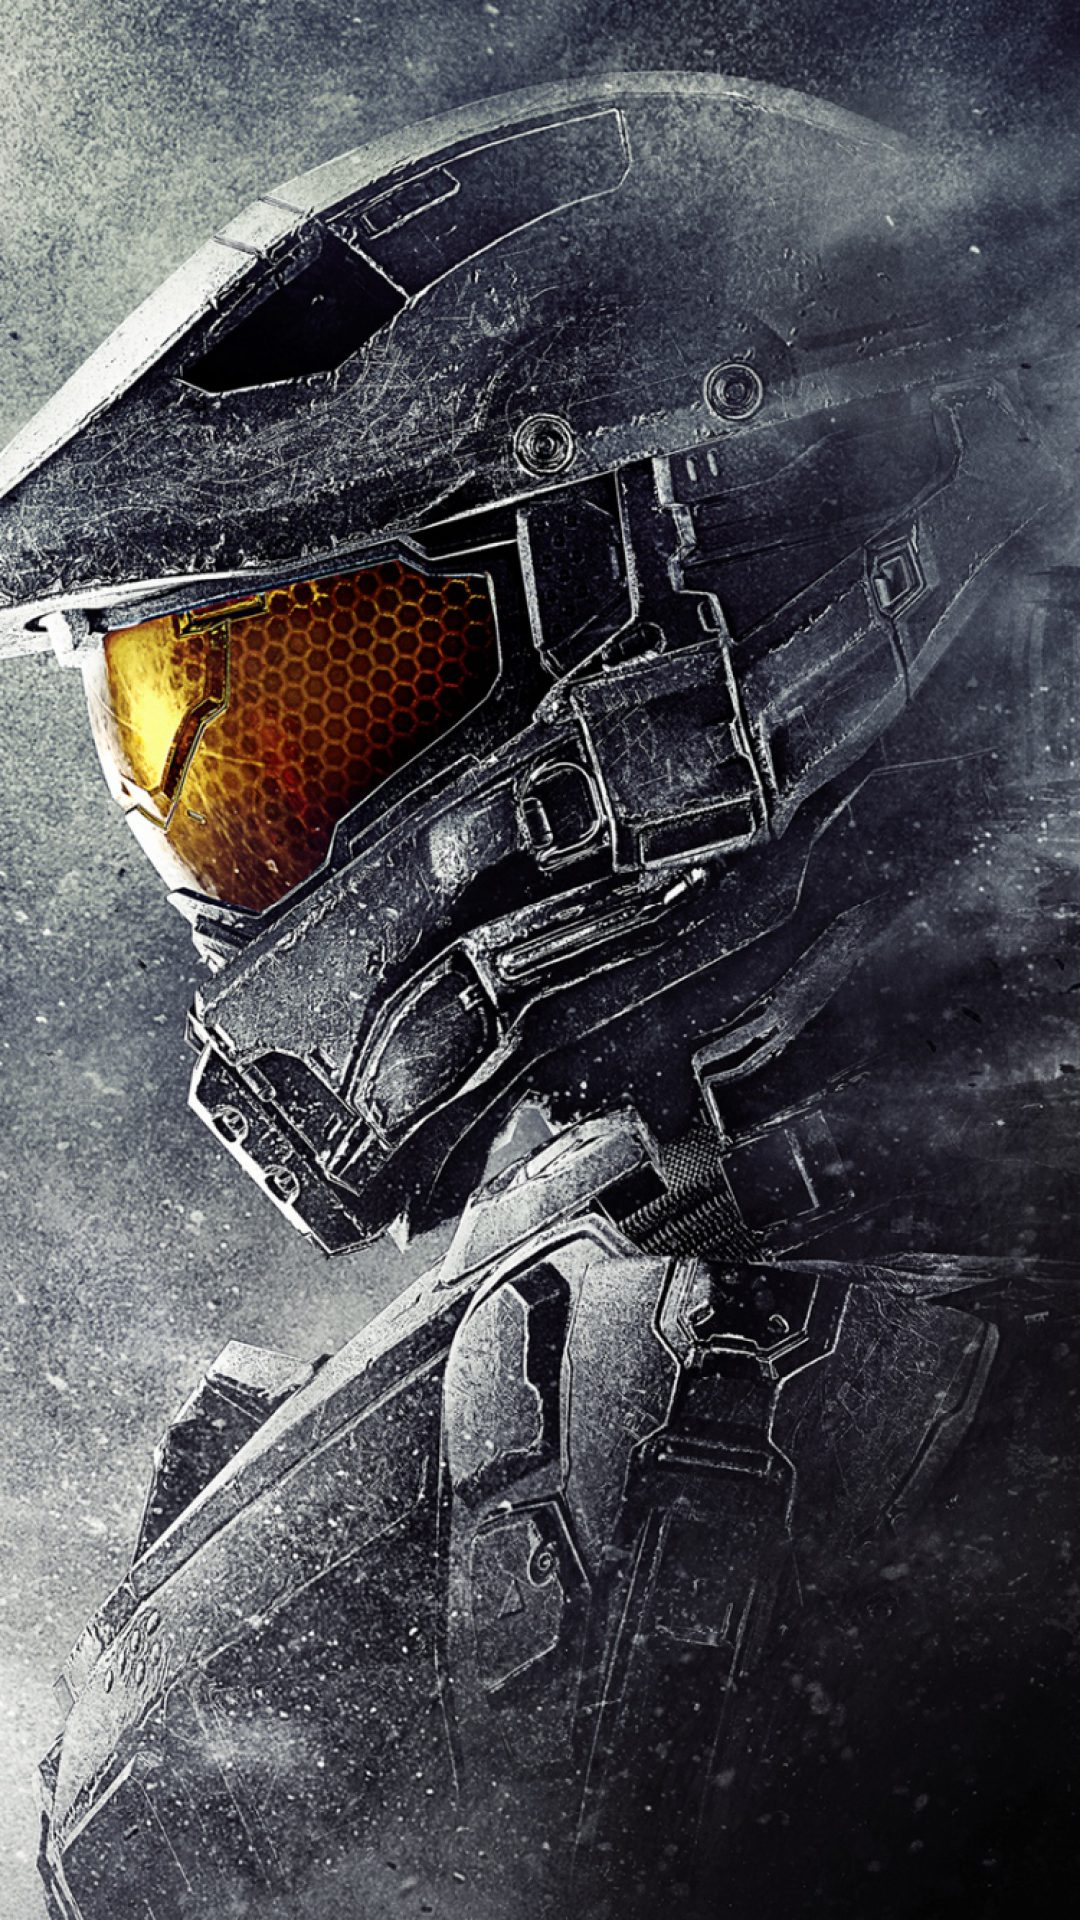 Halo 5 iPhone wallpaper